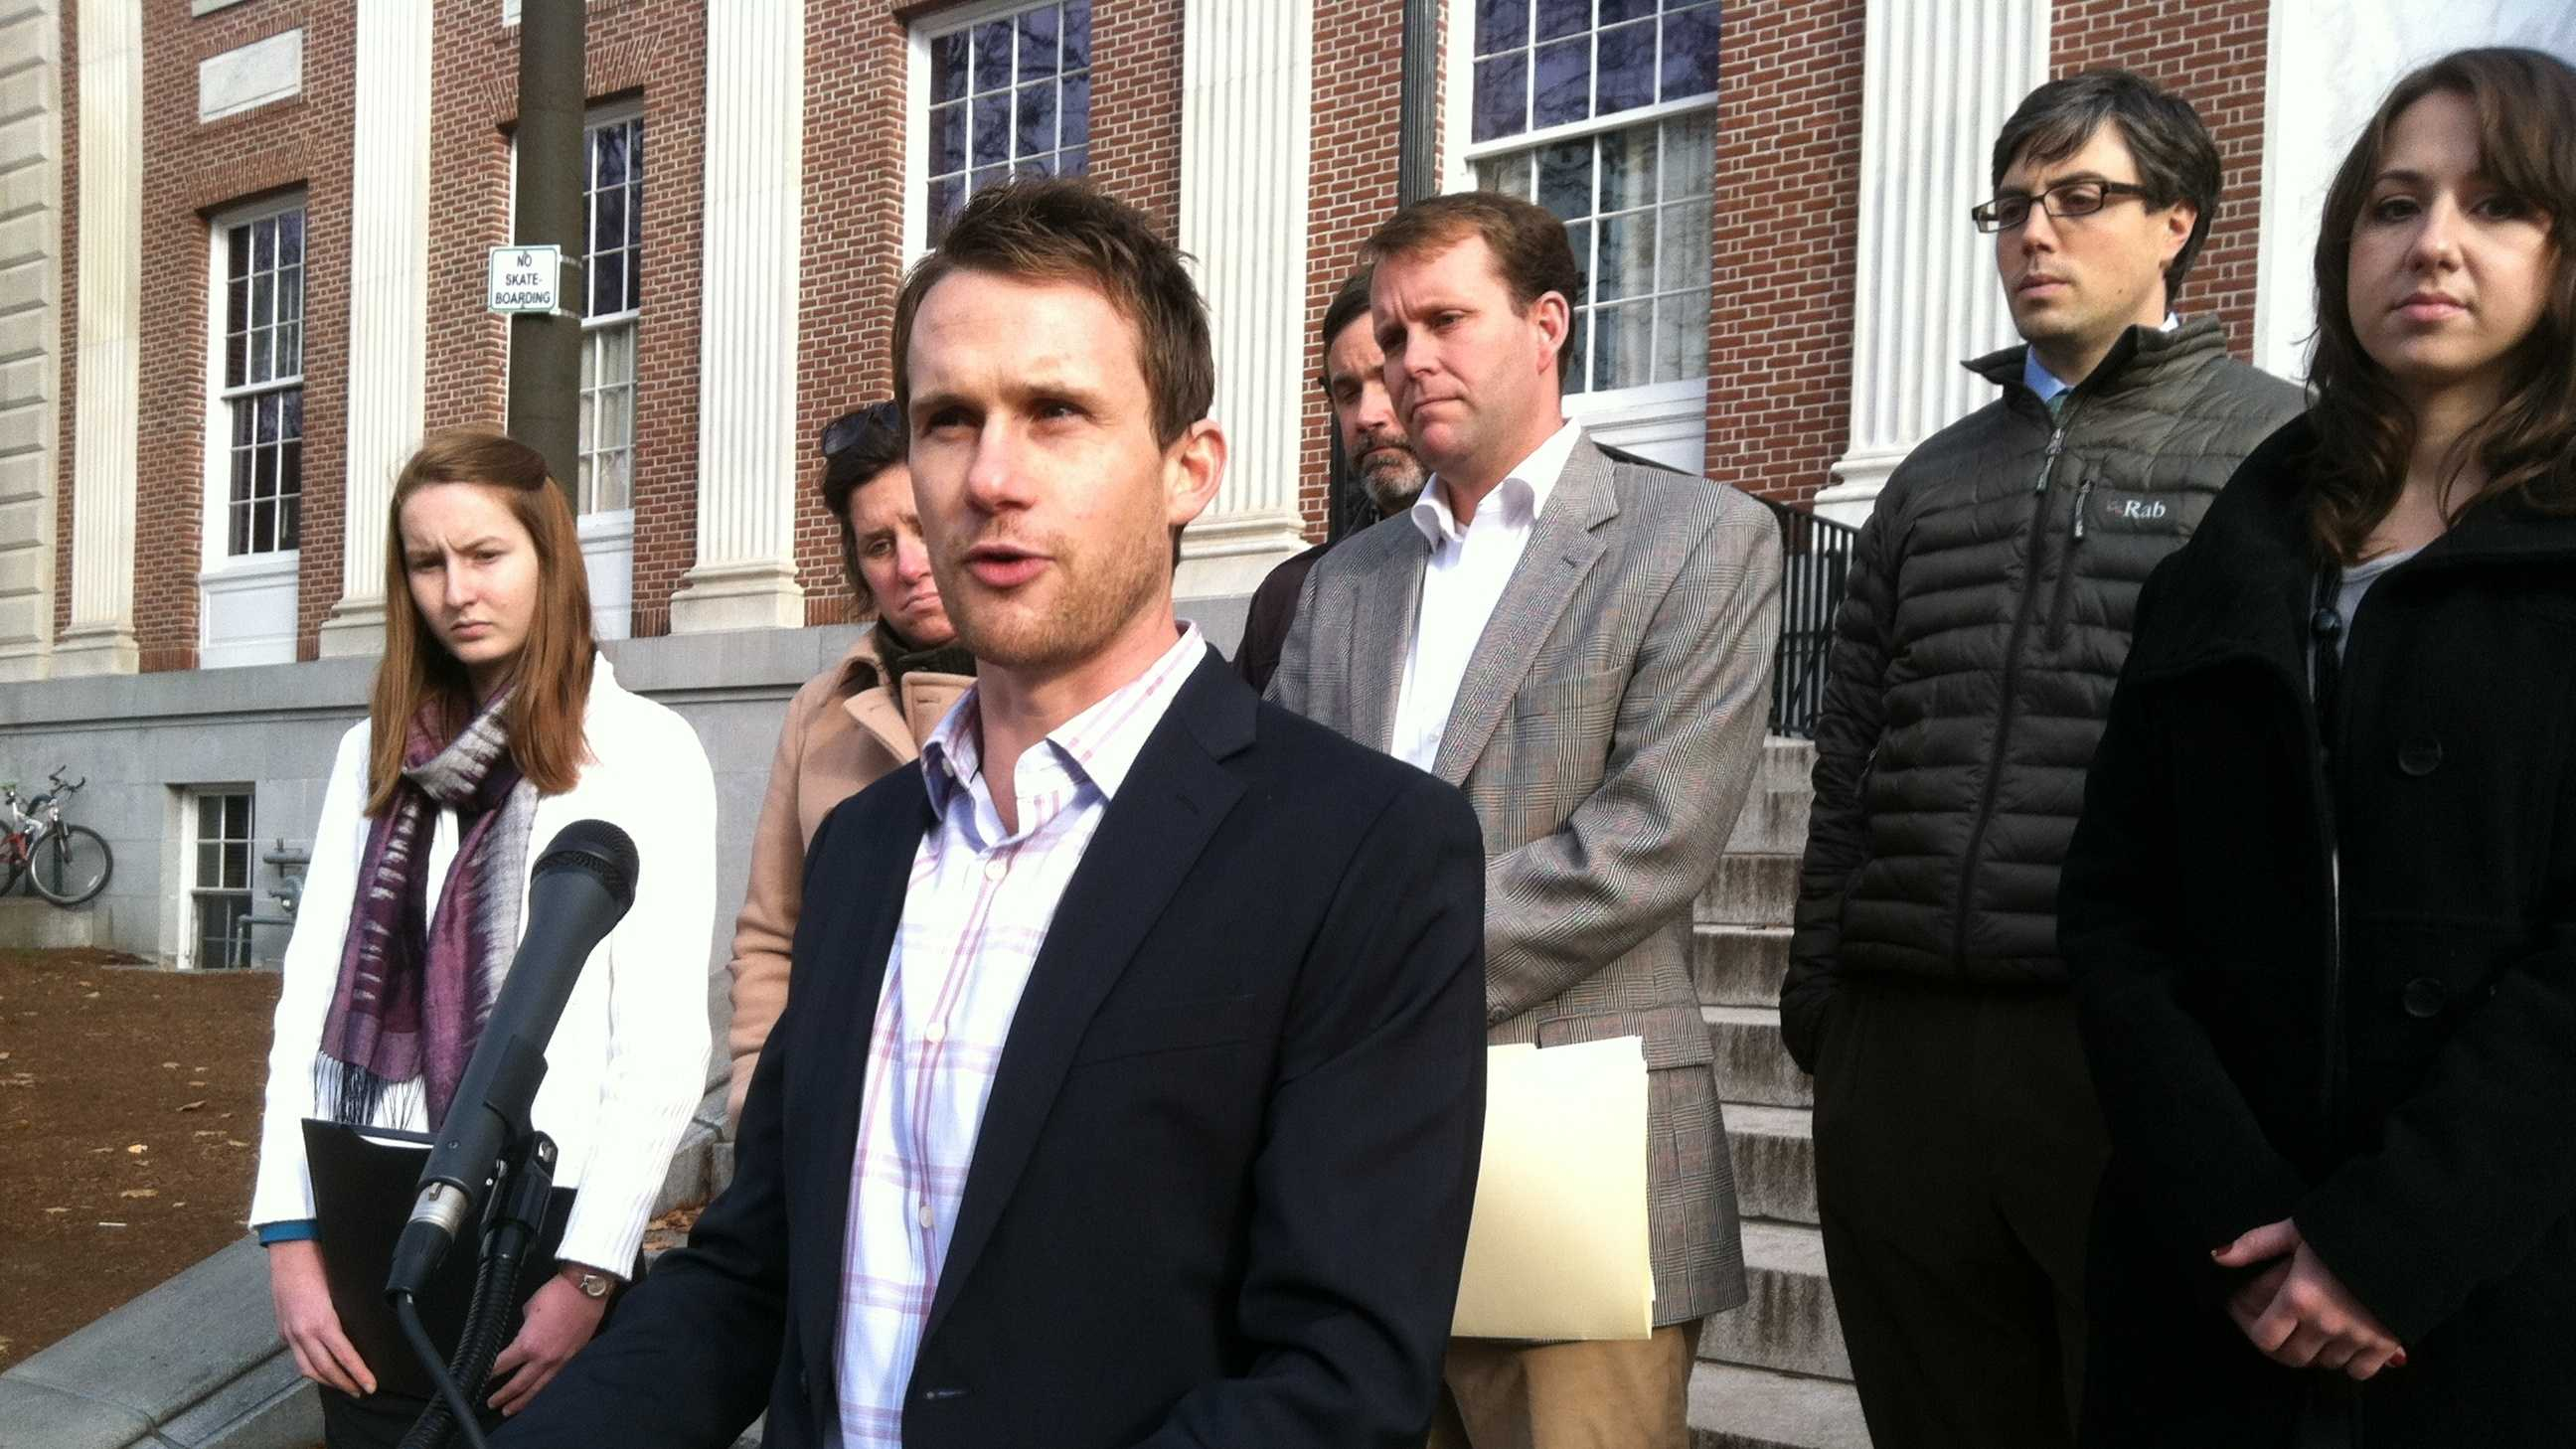 Andrew Savage, a Democratic activist, holds news conference outside City Hall to push for greater state regulation of super PACs.